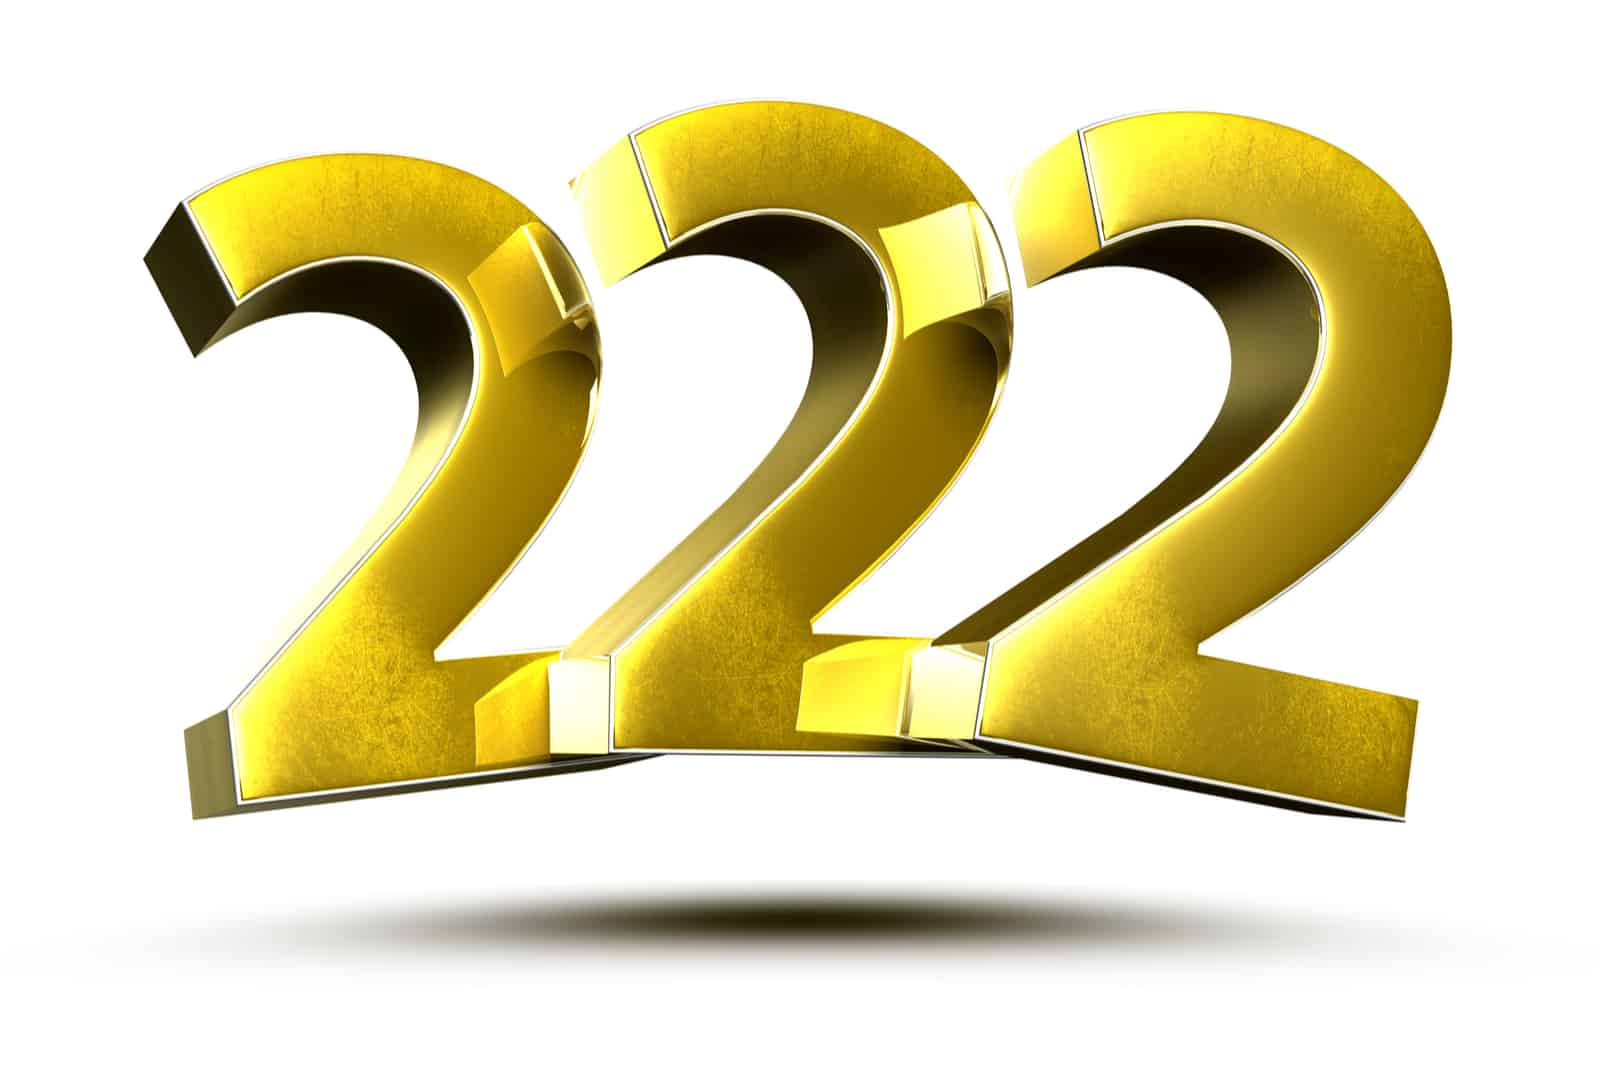 yellow numbers 222 on a white background